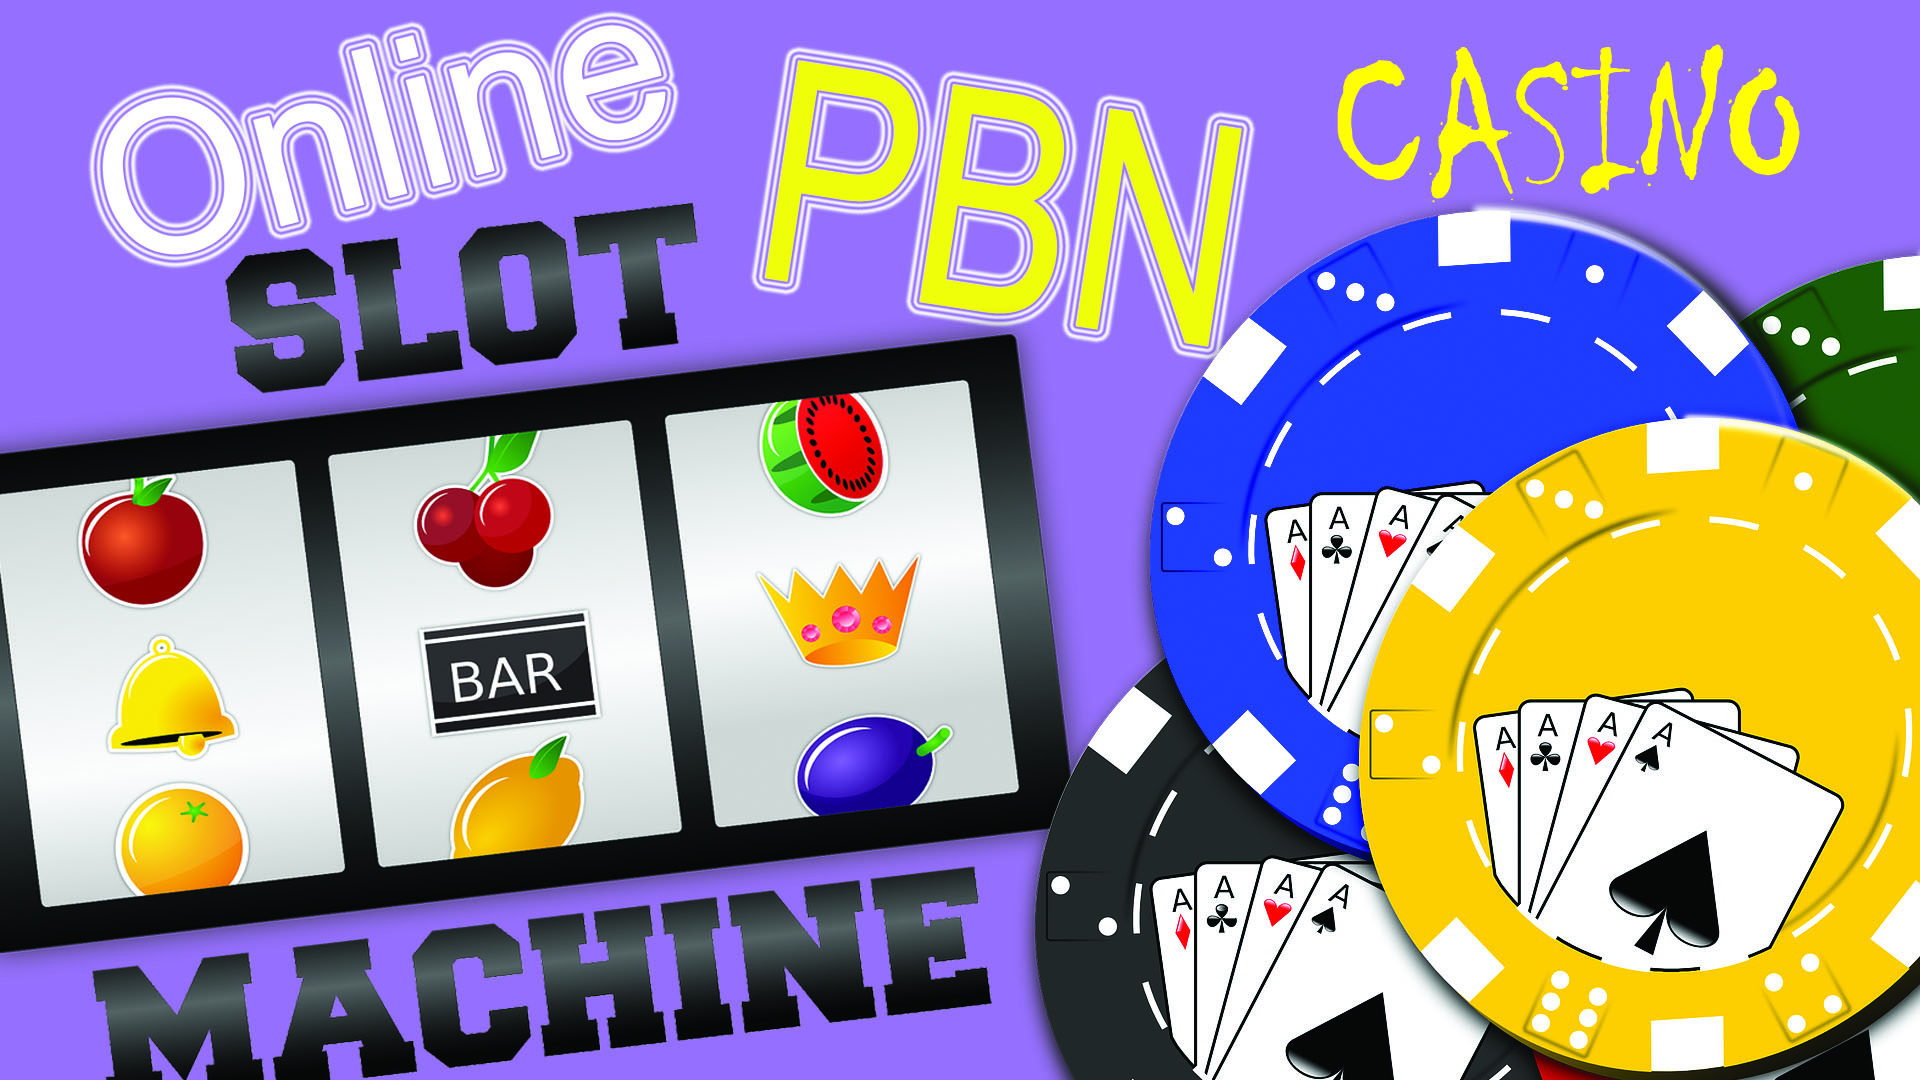 100 HIGH QUALITY permanent,  super powerful JUDI CASINO POKER GAMBLING PBN backlinks